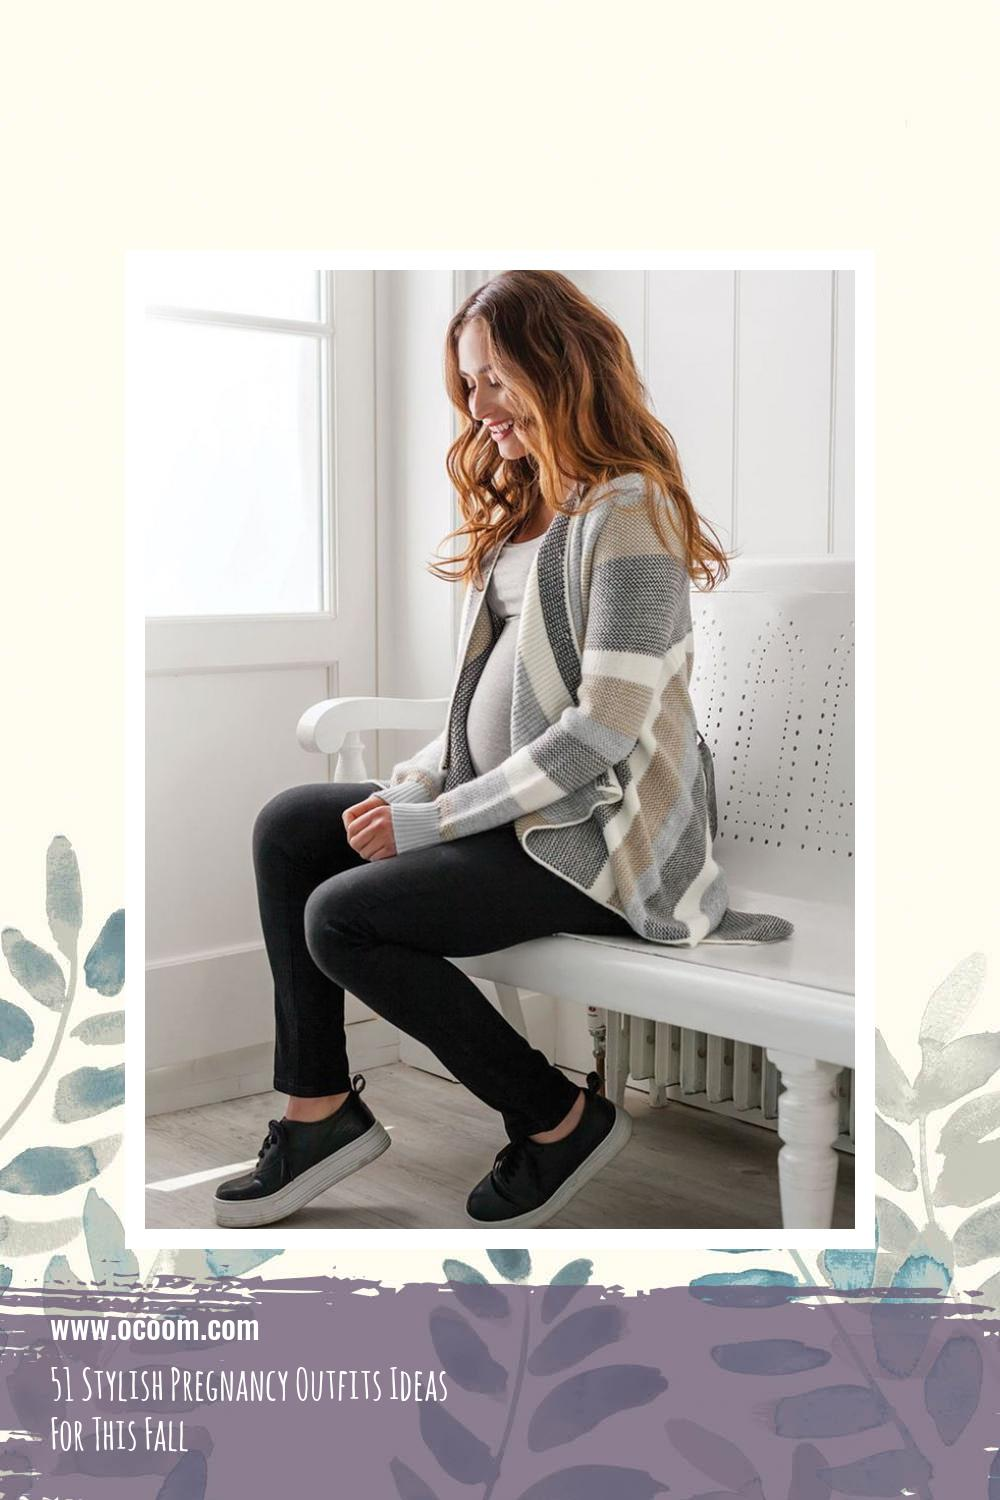 51 Stylish Pregnancy Outfits Ideas For This Fall 33